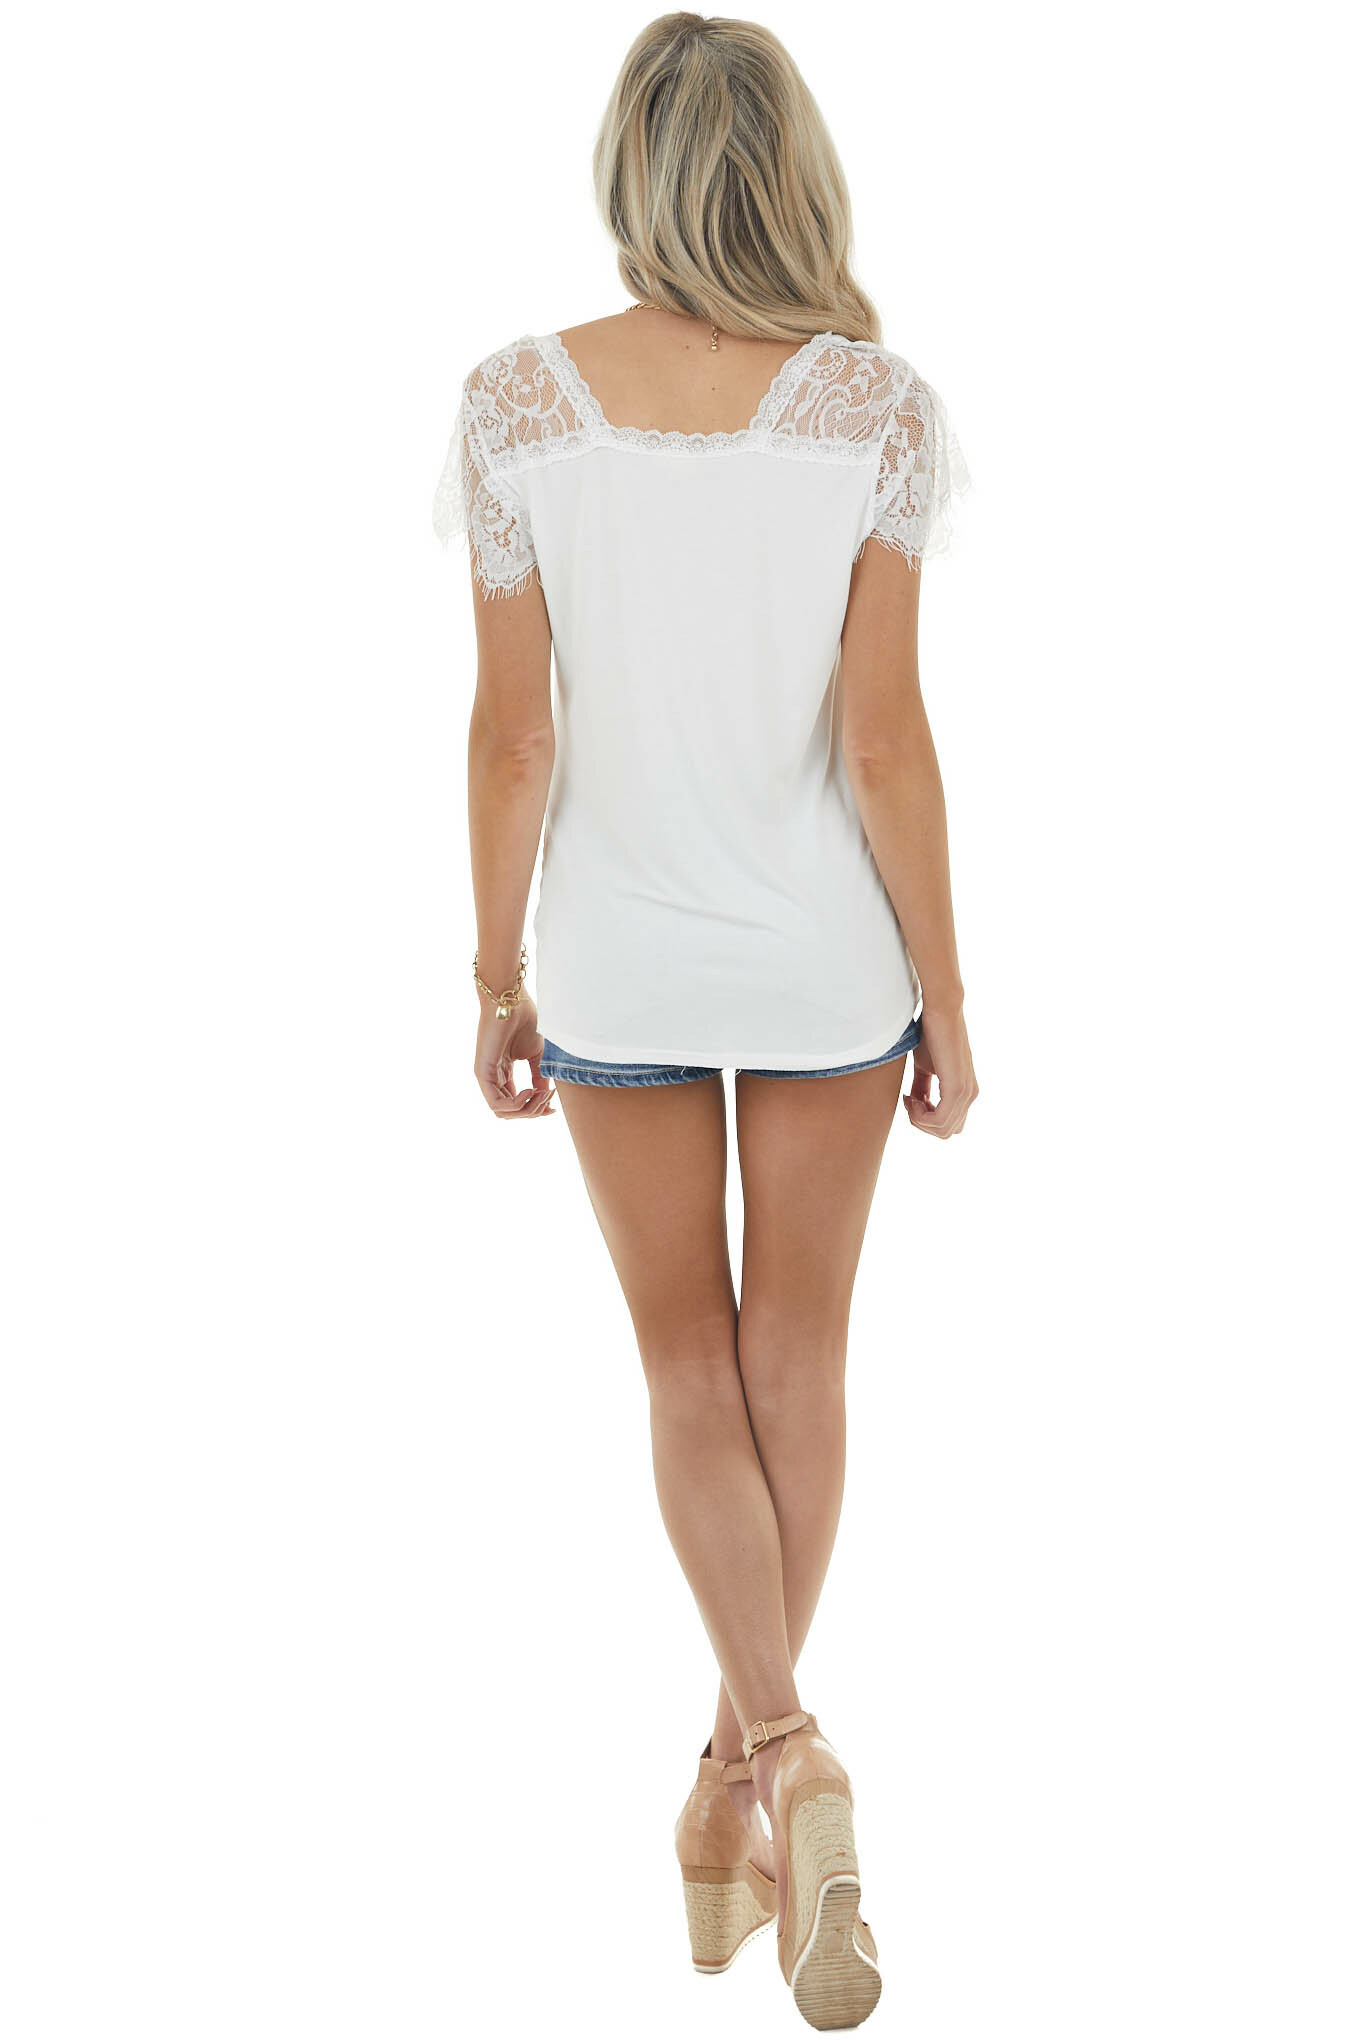 Off White Scoop Neck Top with Sheer Lace Sleeves and Fringe